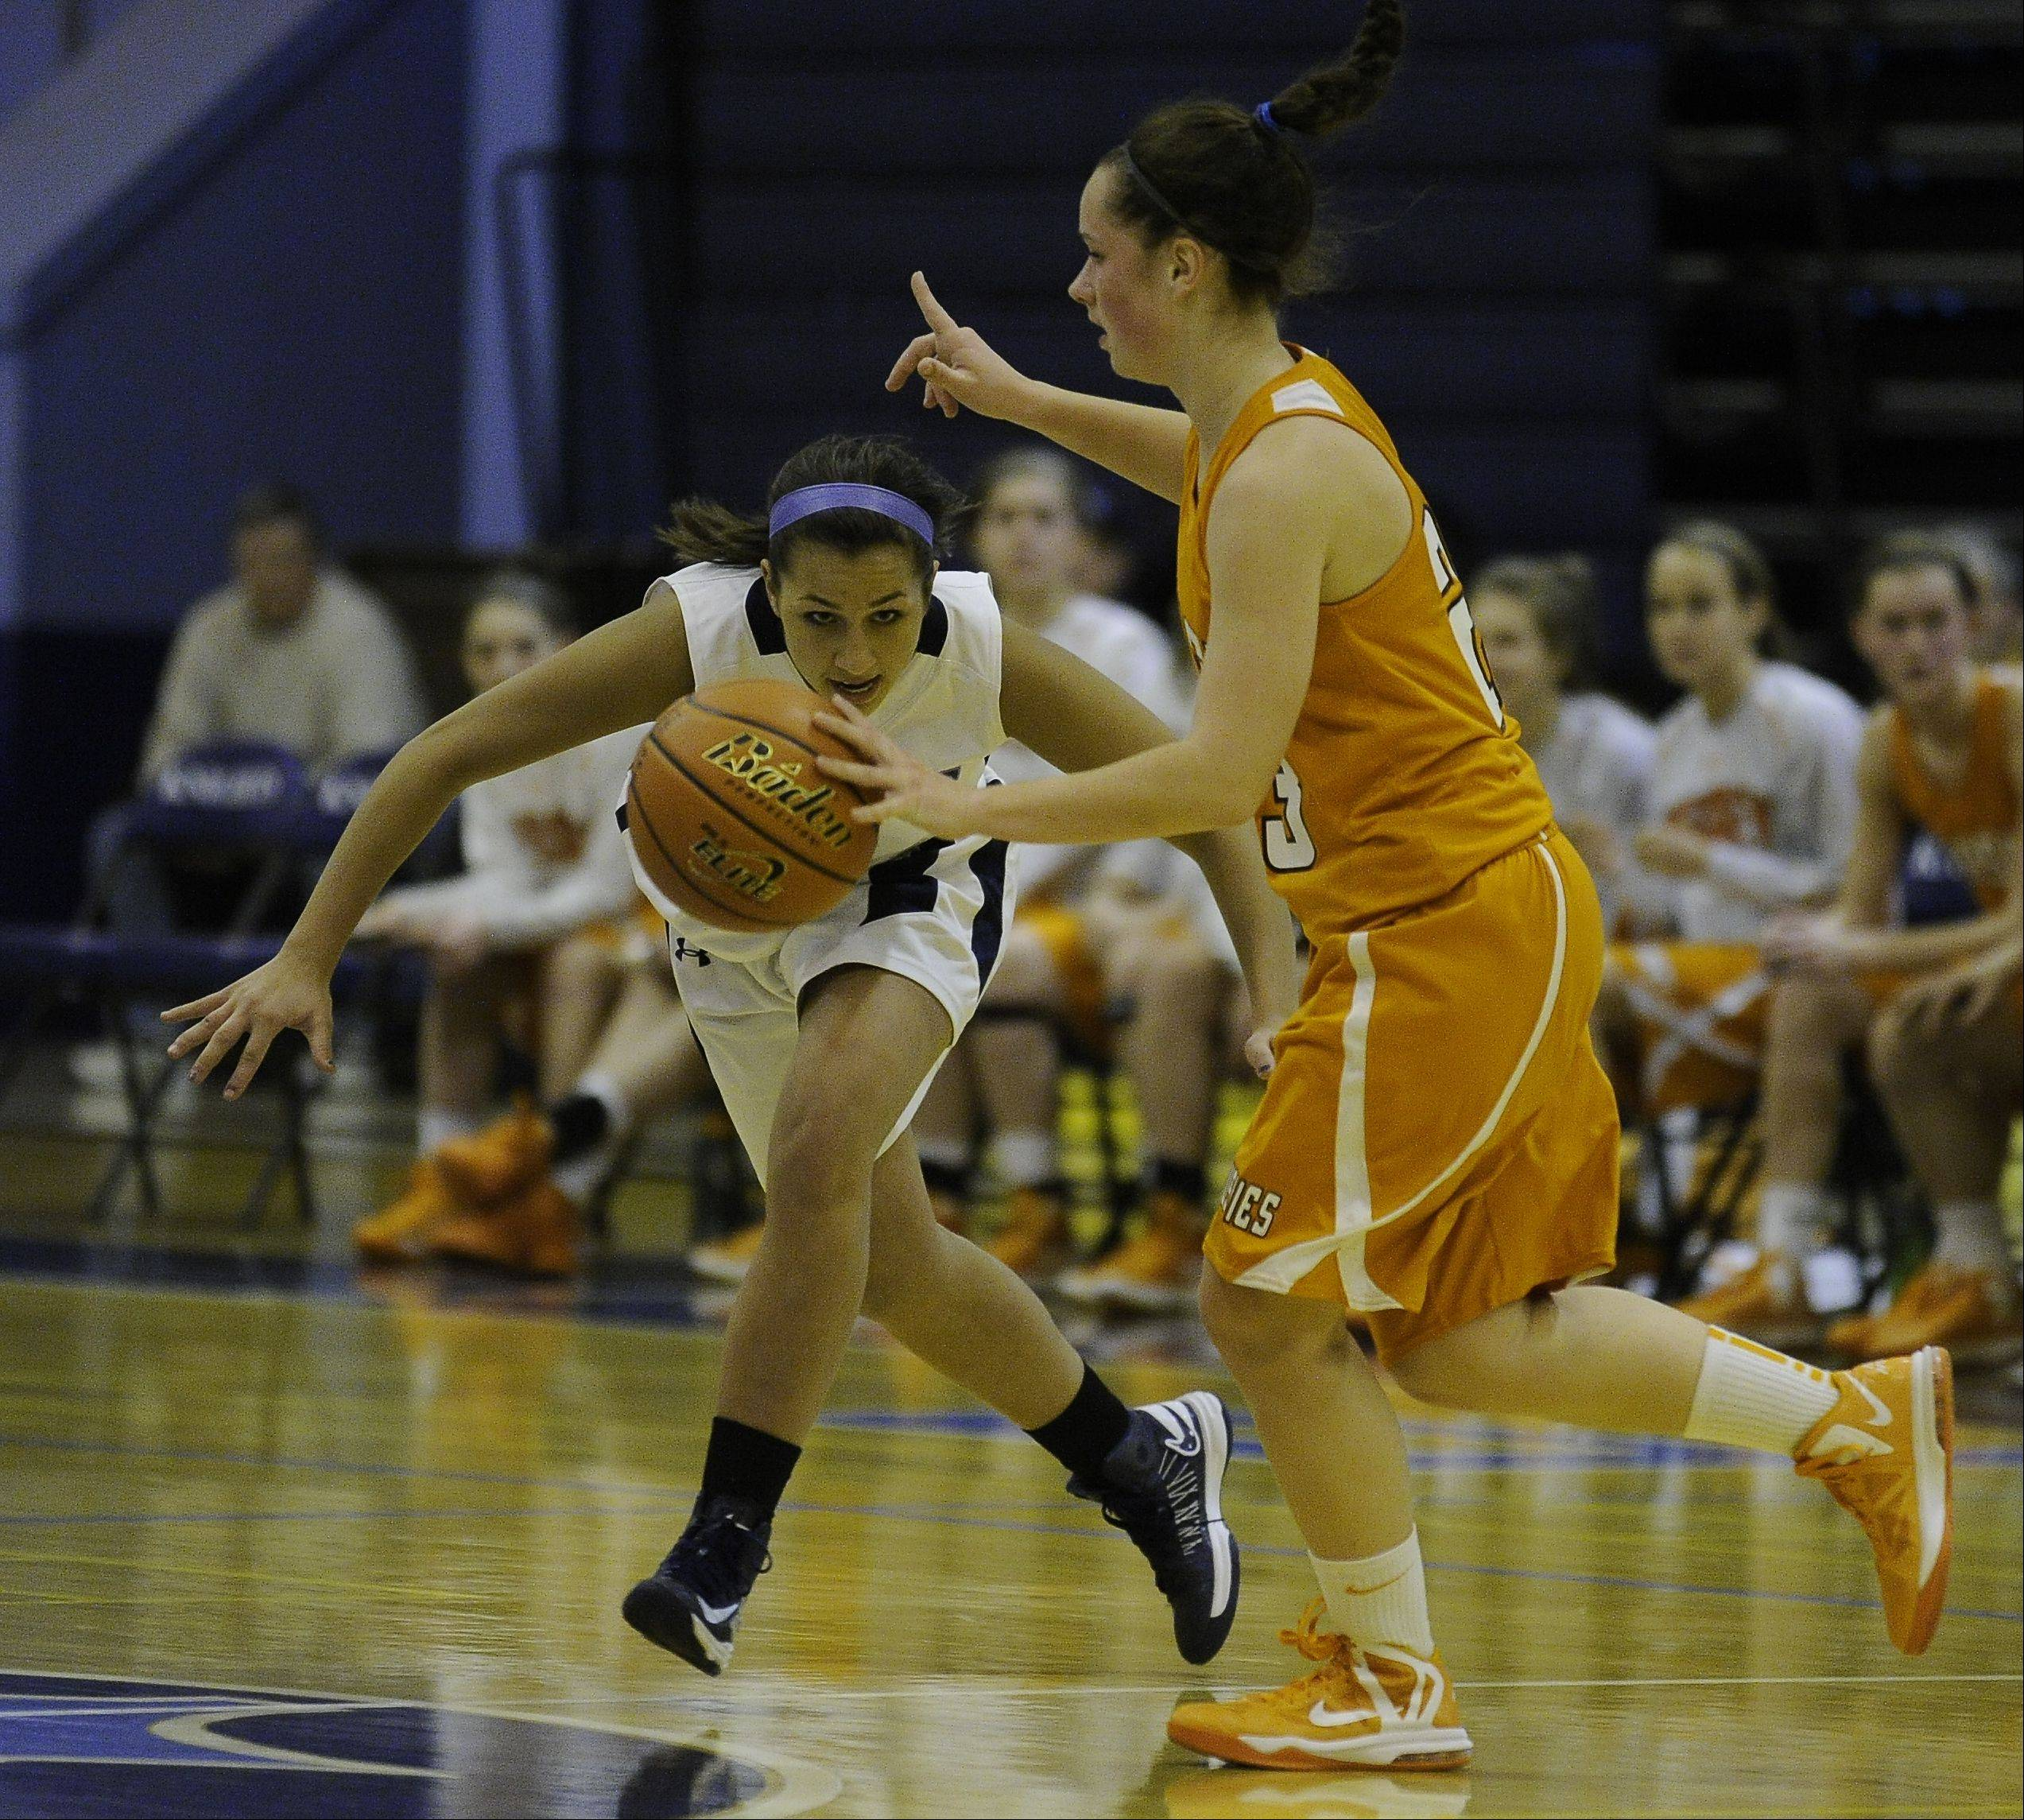 Images from the Hersey vs. Prospect girls basketball game on Friday, December 7th, in Mount Prospect.